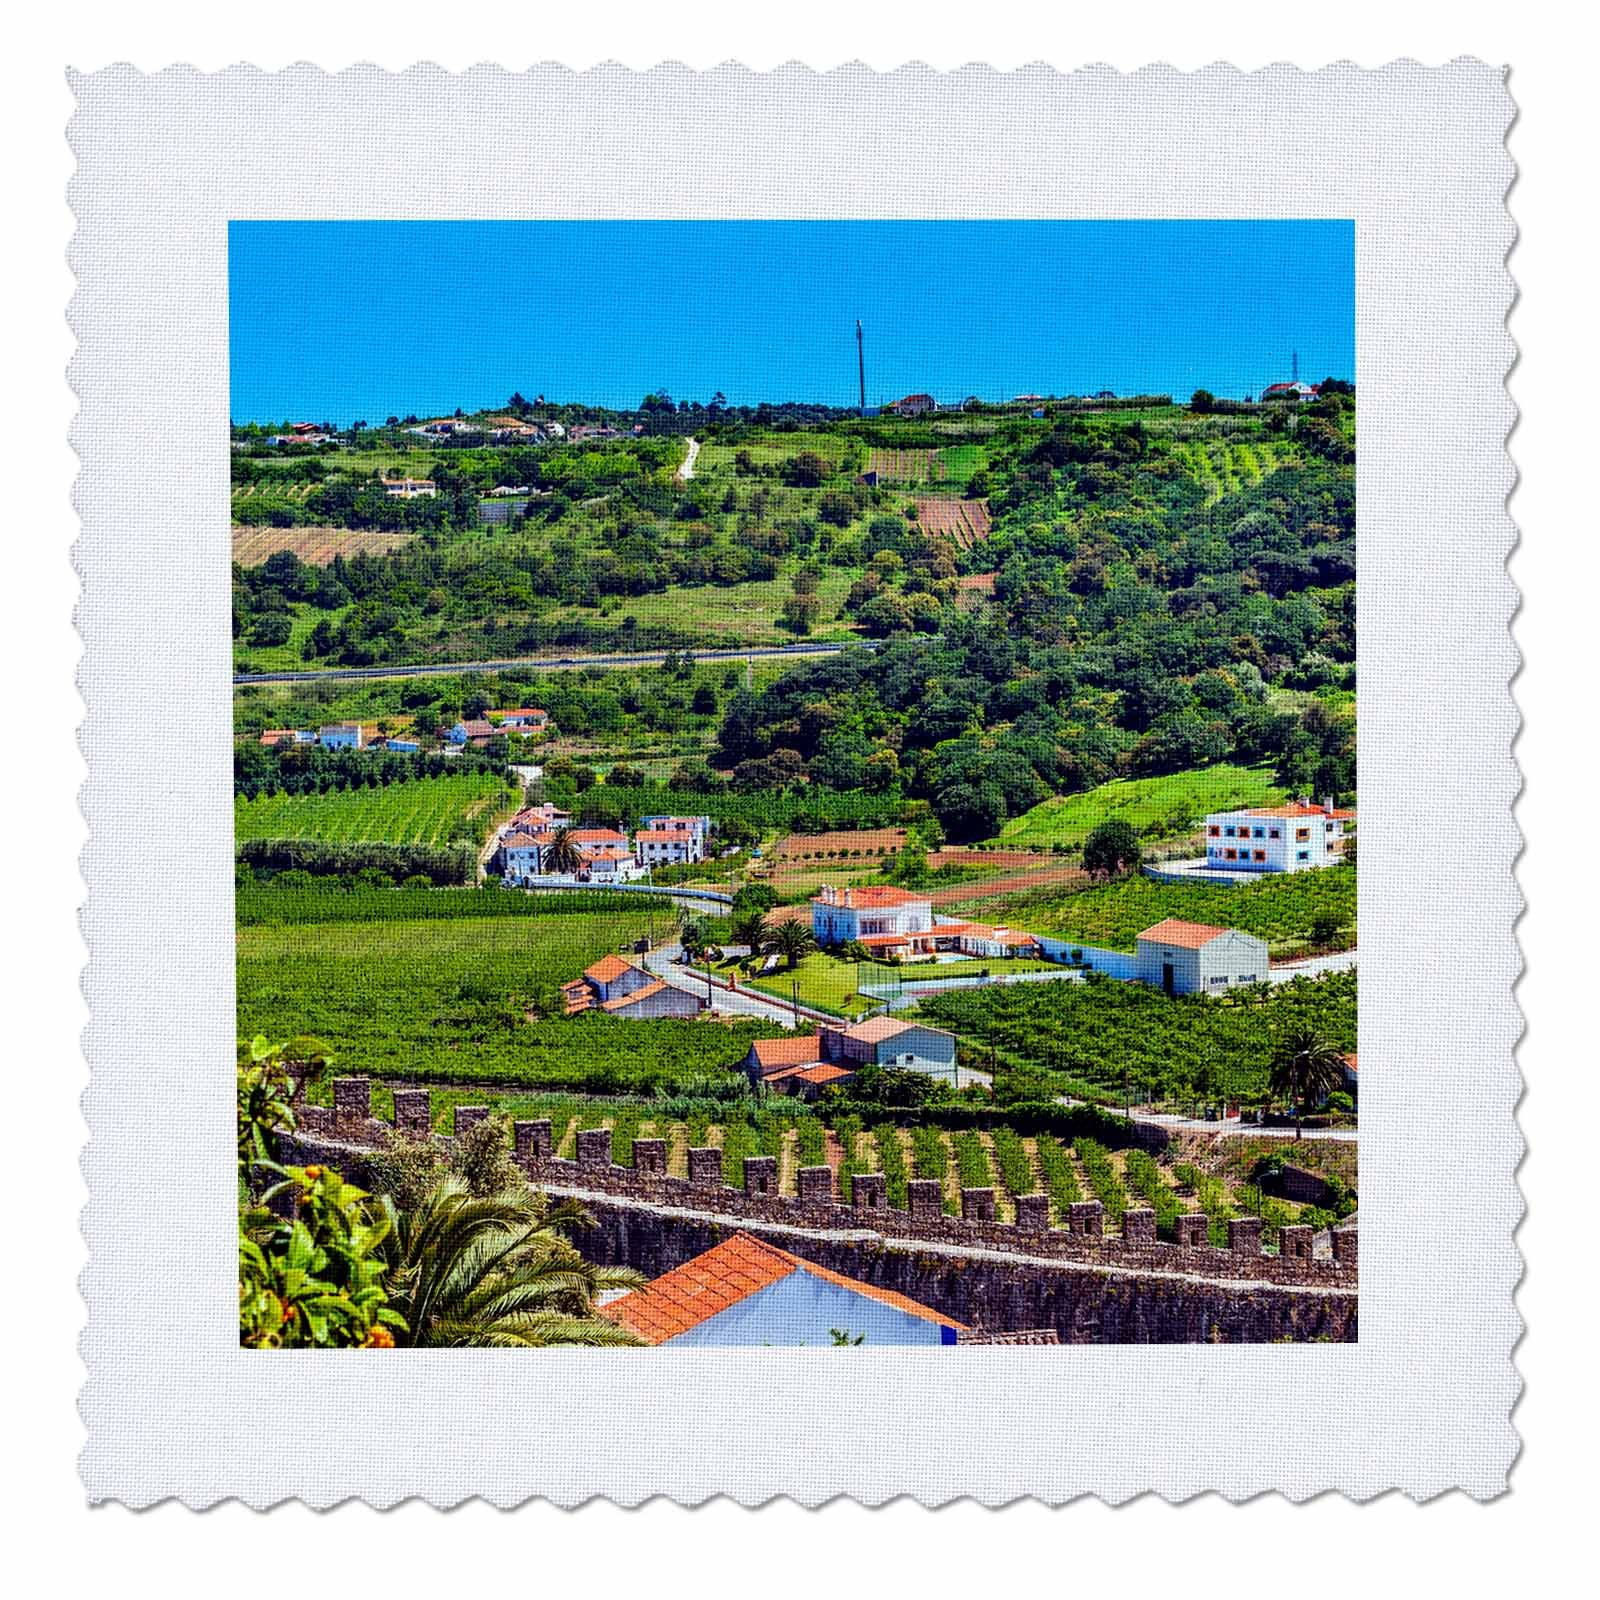 3dRose Danita Delimont - Cities - Castle Walls and Countryside in a Medieval Town, Obidos, Portugal. - 12x12 inch quilt square (qs_277844_4)